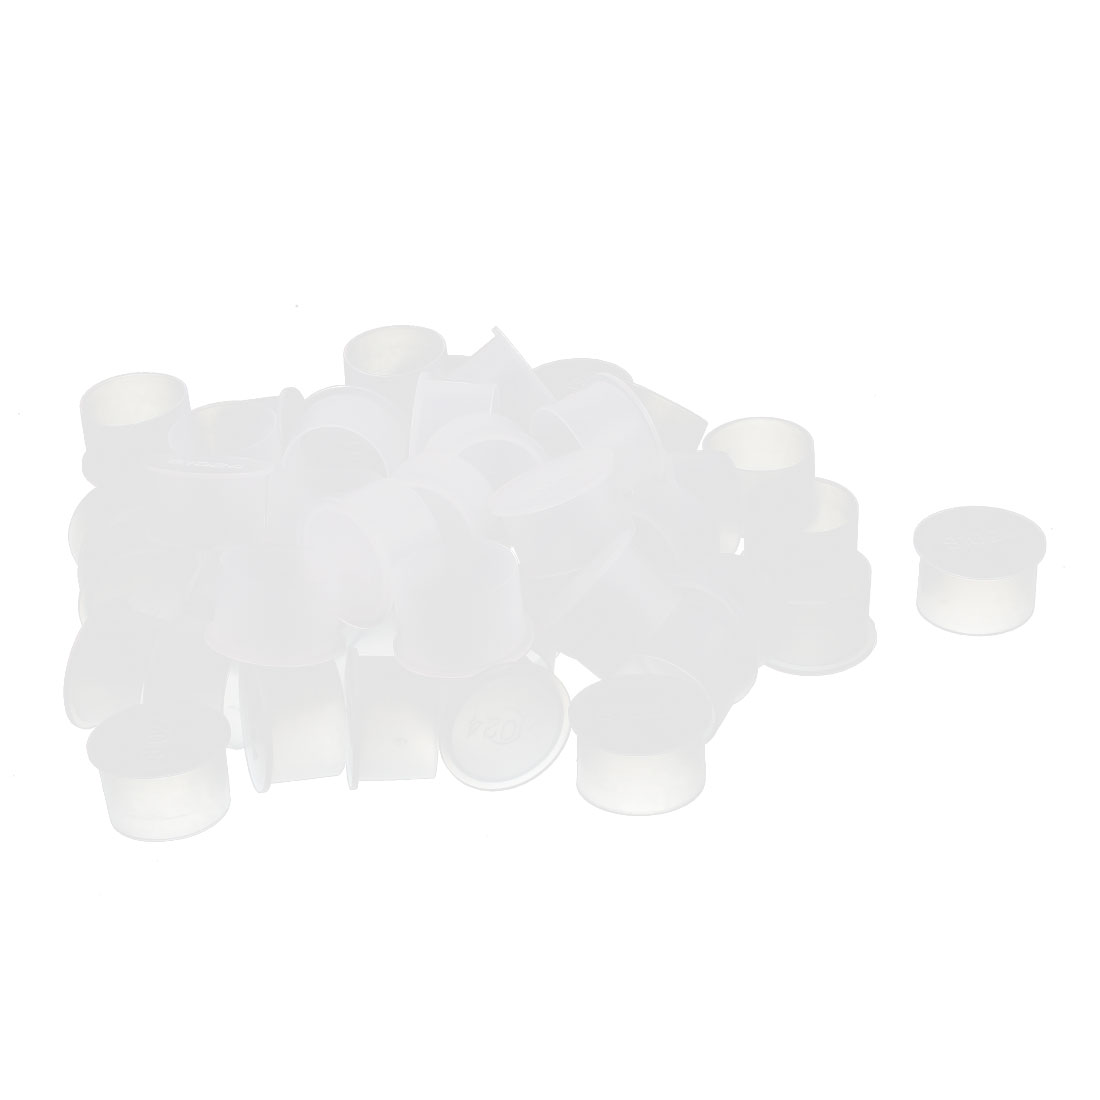 50Pcs 24mm Inner Dia PVC Insulated End Cap Wire Cable Tube Cover Protector